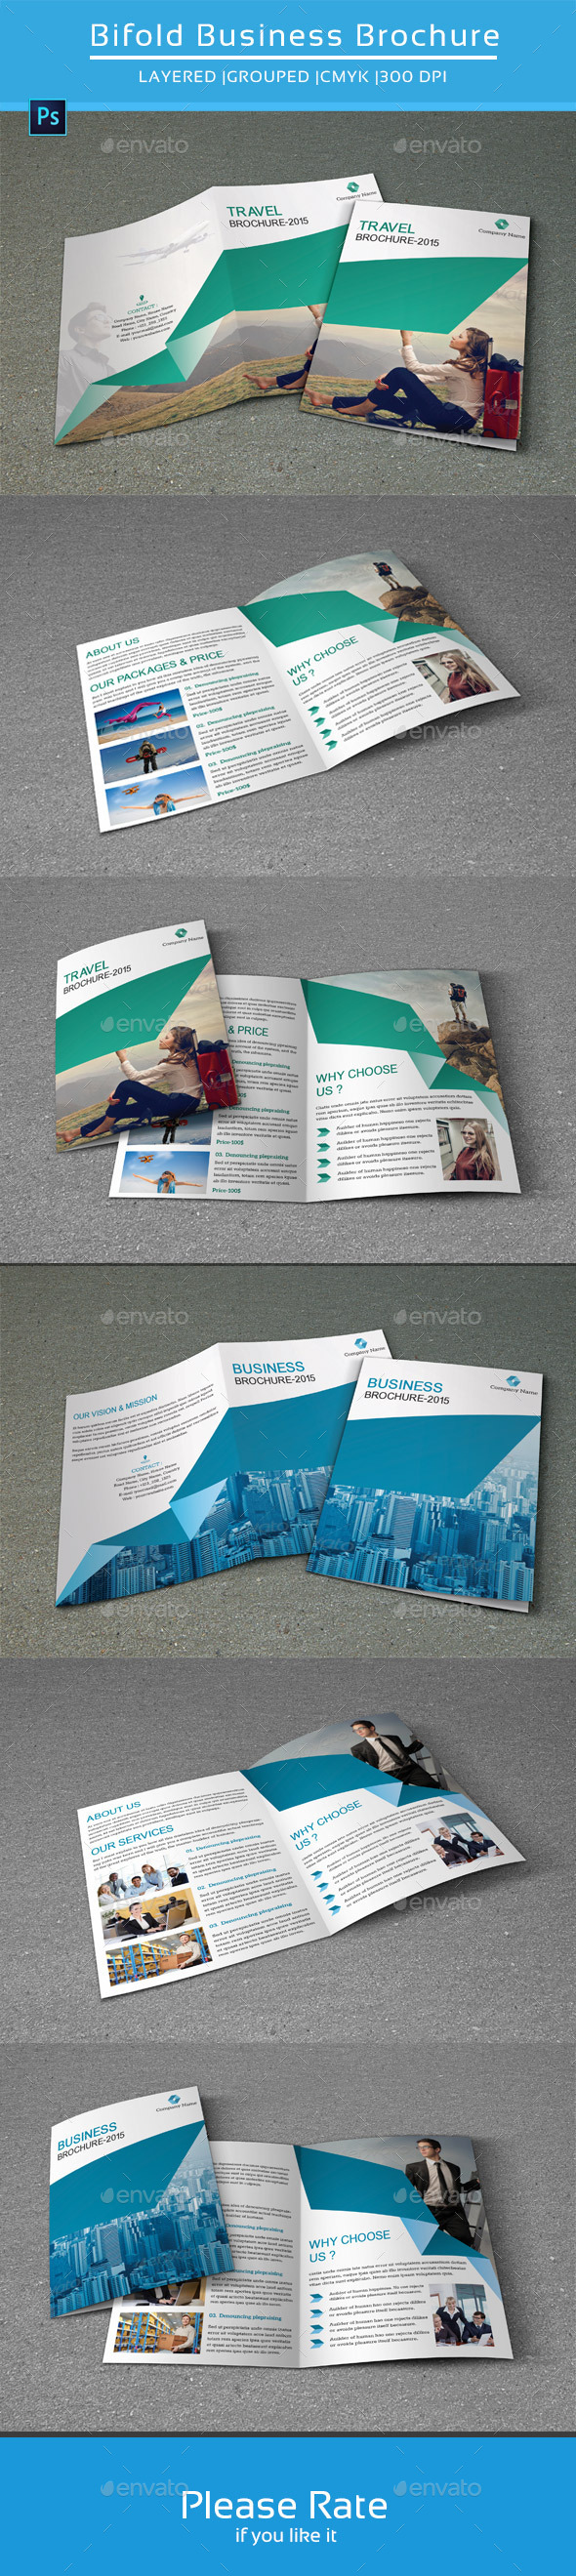 GraphicRiver Bifold Business Brochure-V135 8881239